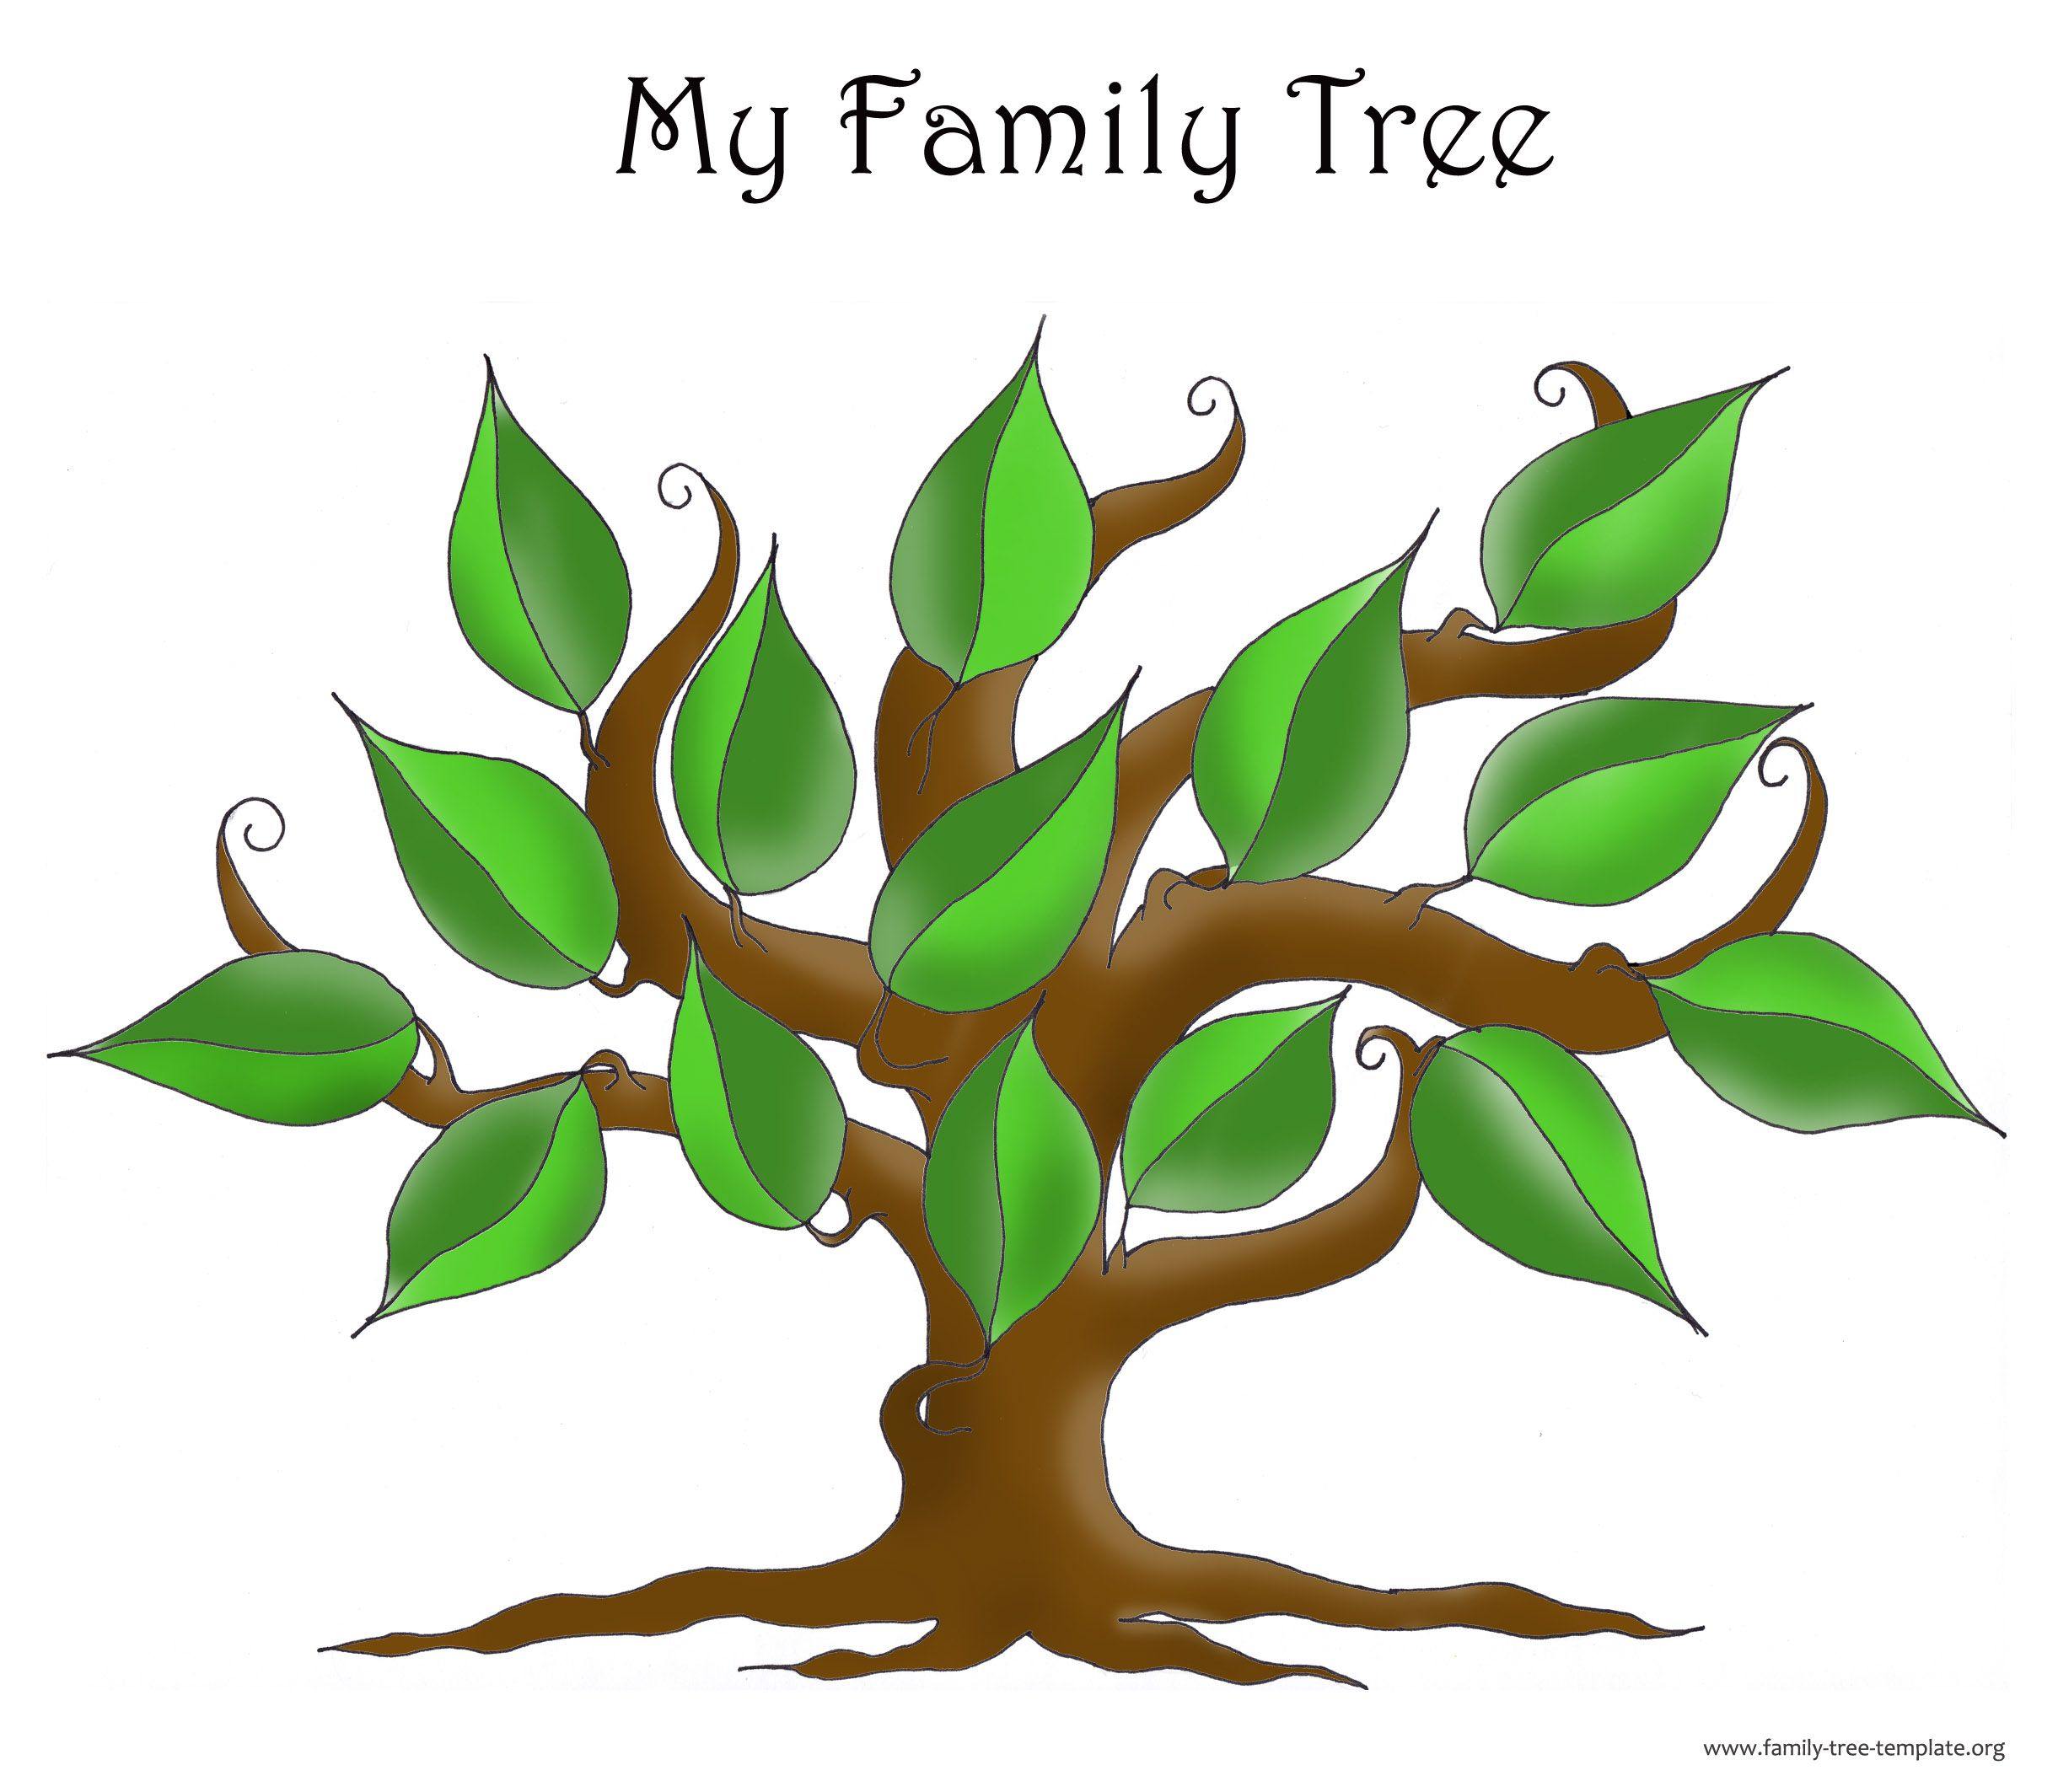 Lovely 1099 Excel Template Thin 1300 Resume Government Samples Selection Criteria Clean 16th Birthday Invitation Templates 17 Year Old Resume Sample Youthful 1811 Criminal Investigator Resume Brown1920s Party Invitation Template Adoptive Family Tree. British Royal Family Tree. Complete Family ..